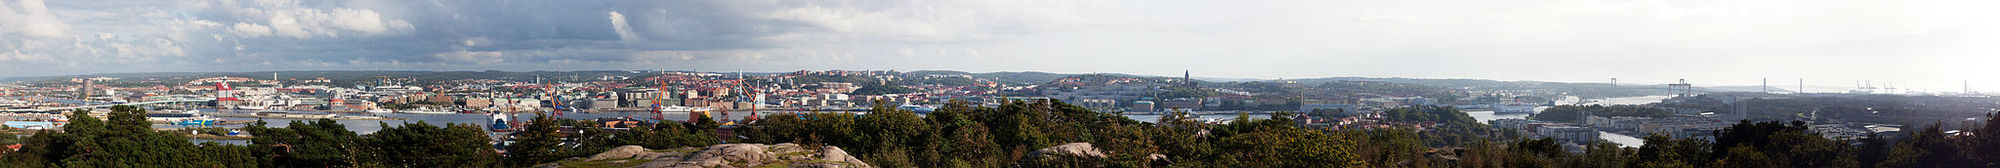 Gothenburg-Panorama-20110911.jpg